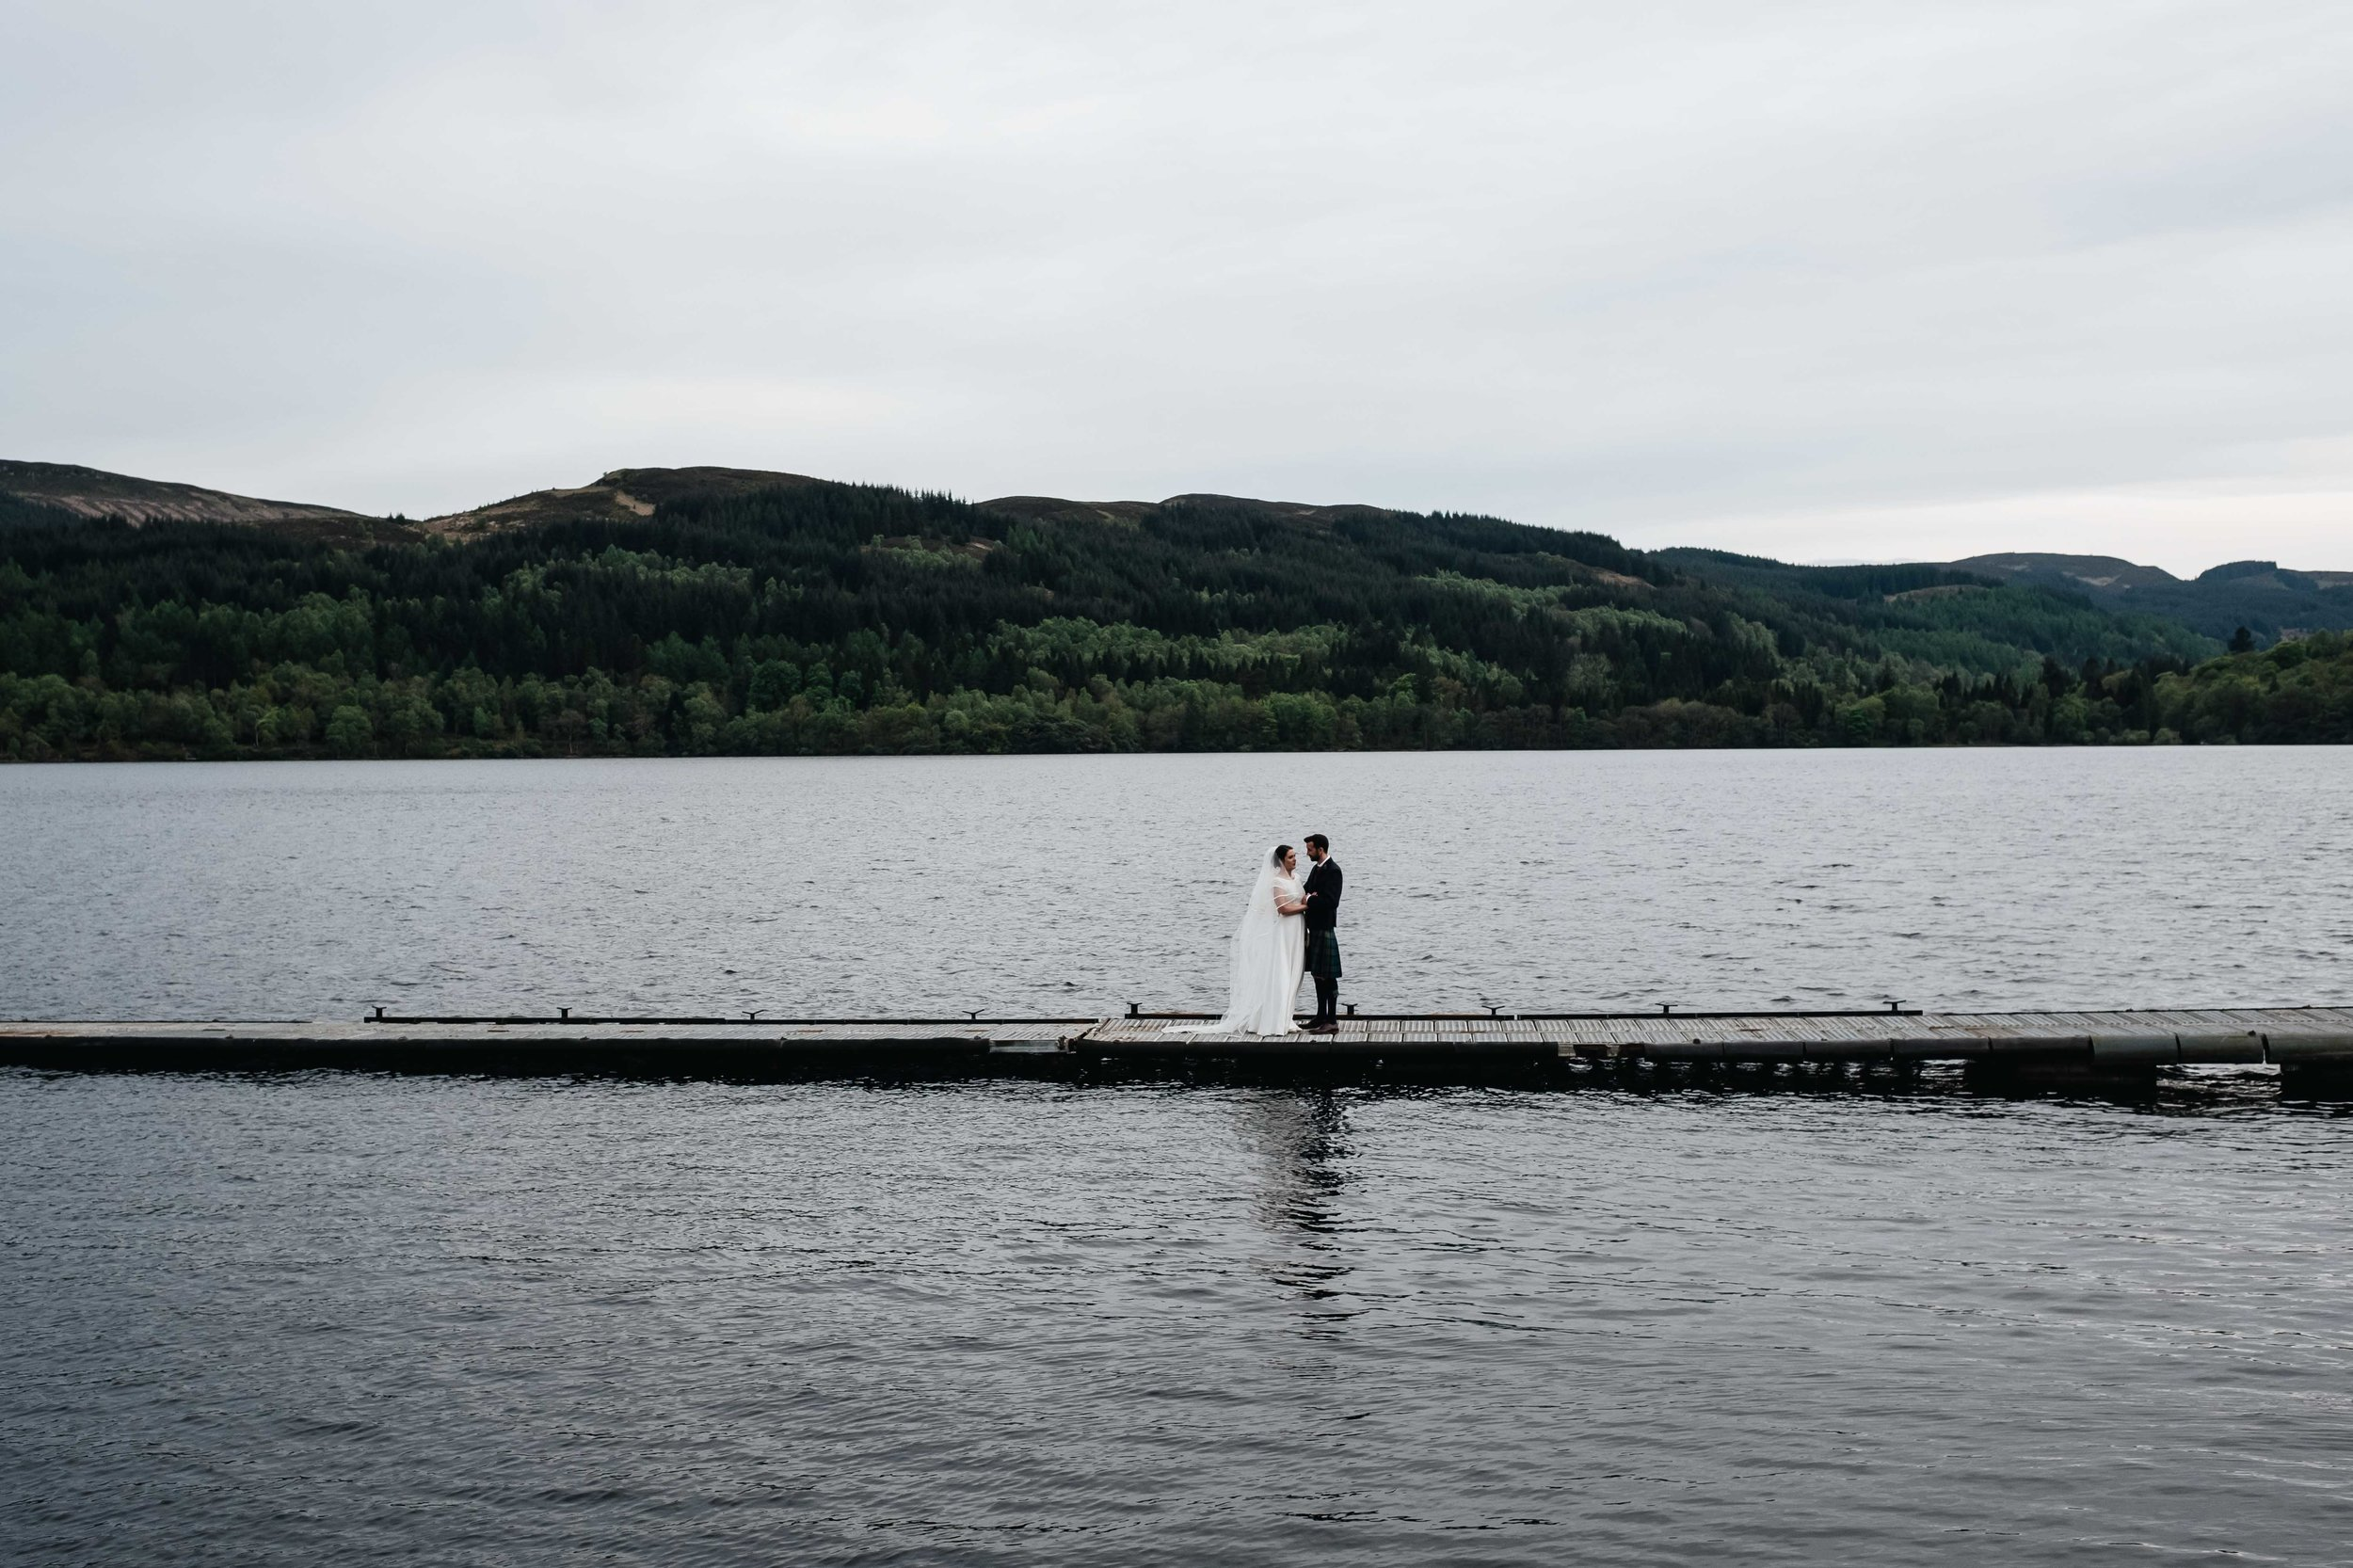 bride and groom embrace on a jetty